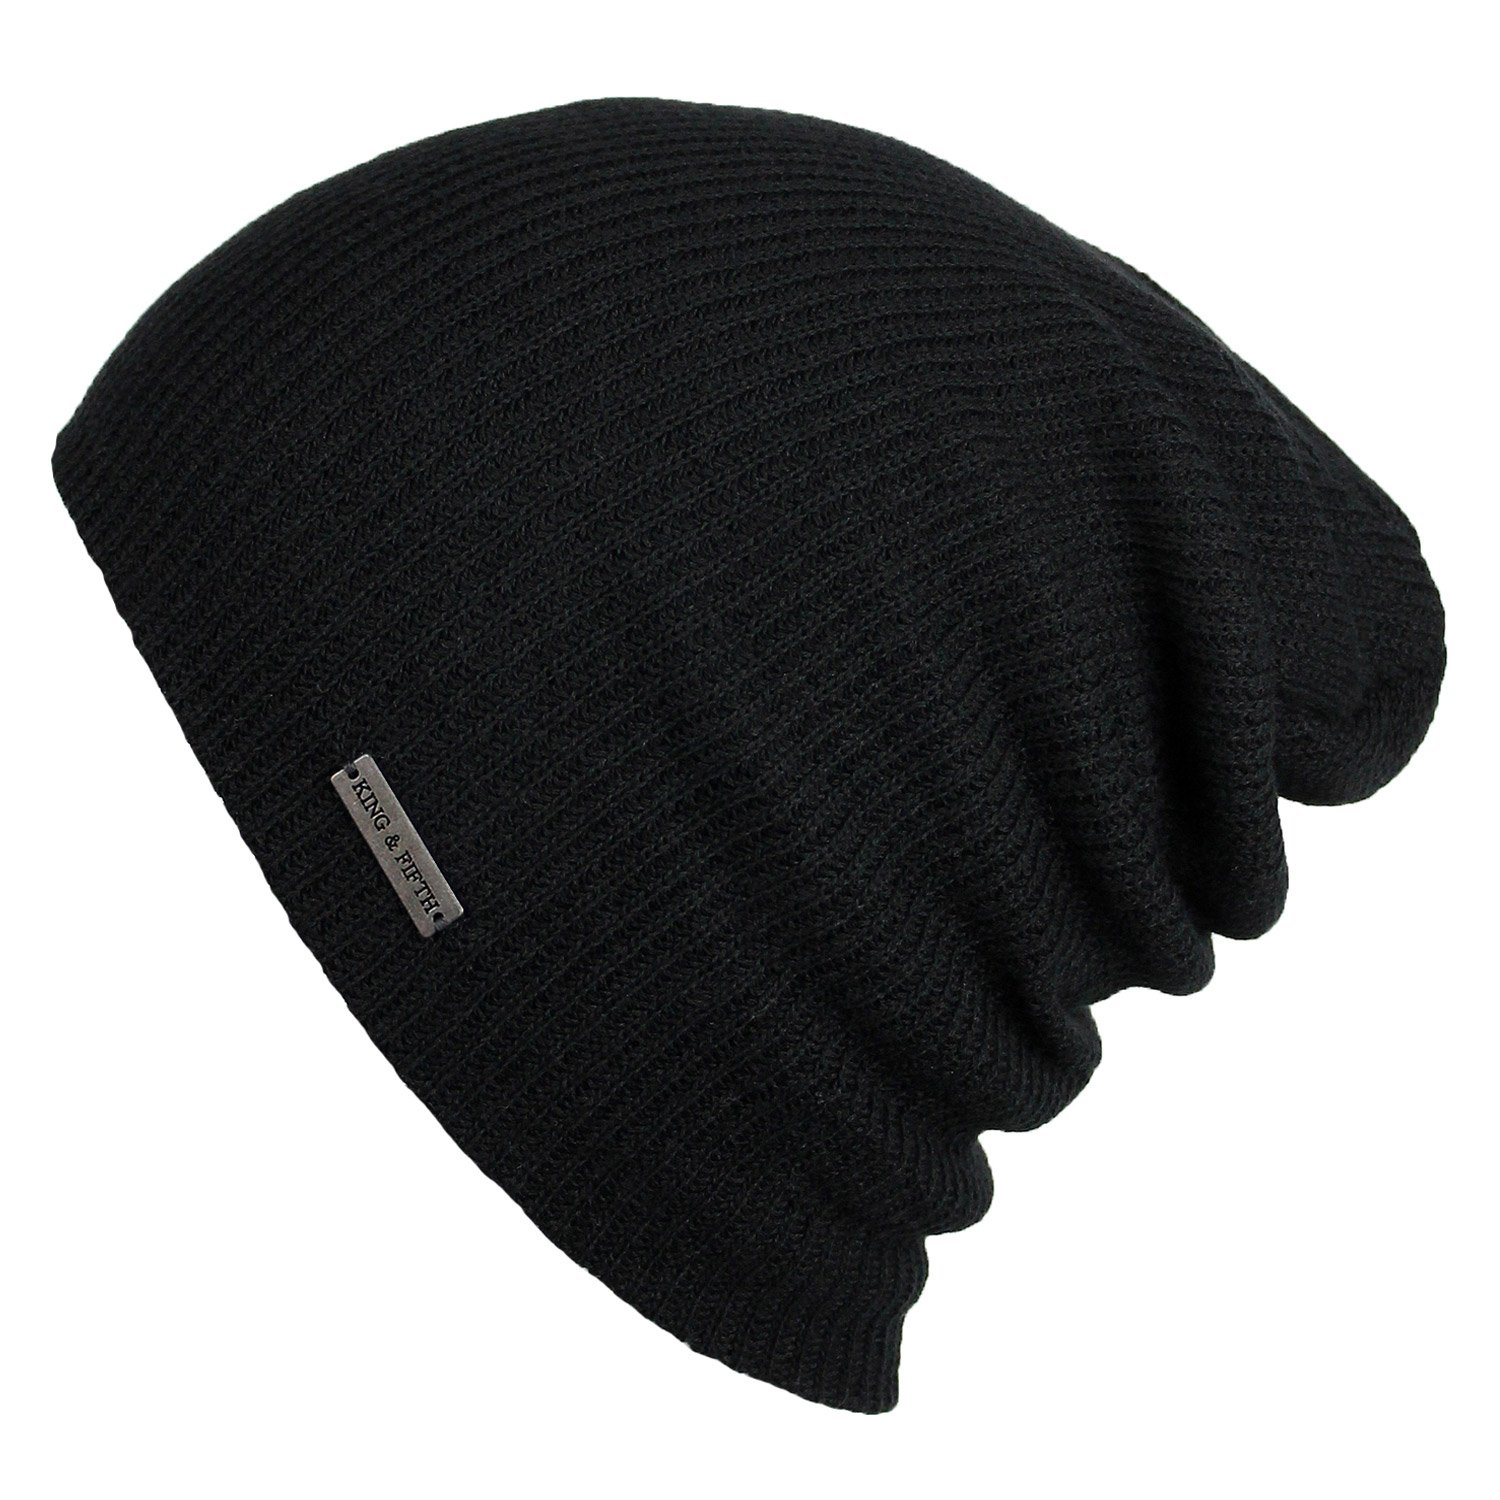 Summer Beanie by King & Fifth | Slouchy Beanie for Men & Women + Breathable Cotton Beanie and Perfect for Warm Weather + Lightweight Beanie Black